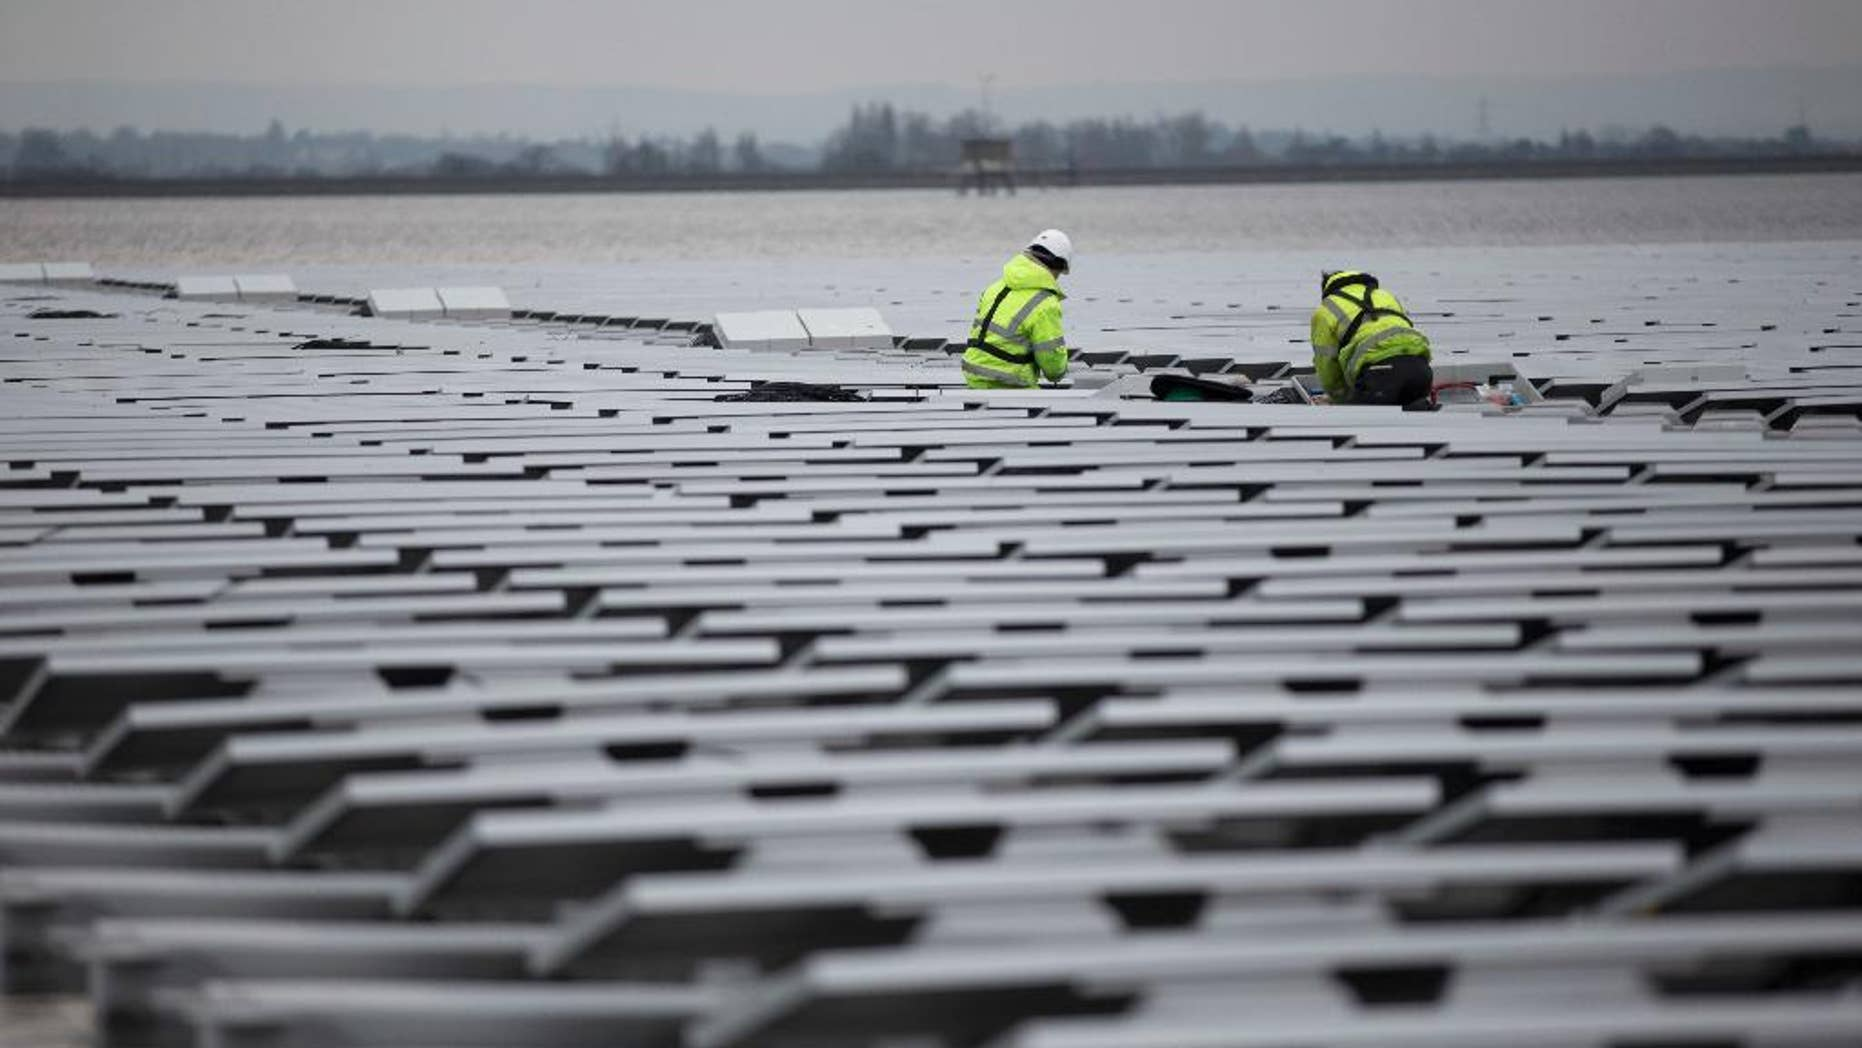 FILE - This is a  Monday, March 21, 2016 file photo of contractors continue work on Europe's biggest floating solar panel array as it nears completion on the Queen Elizabeth II Reservoir near Walton-on-Thames in south west London.  Data published Tuesday June 21, 2016 by the European Environment Agency show that Britain's greenhouse gas emissions fell by 34.3 percent in 1990-2014, the biggest percentage drop in the EU except for eastern countries whose emissions fell sharply when communist-era heavy industries collapsed. (AP Photo/Matt Dunham, File)